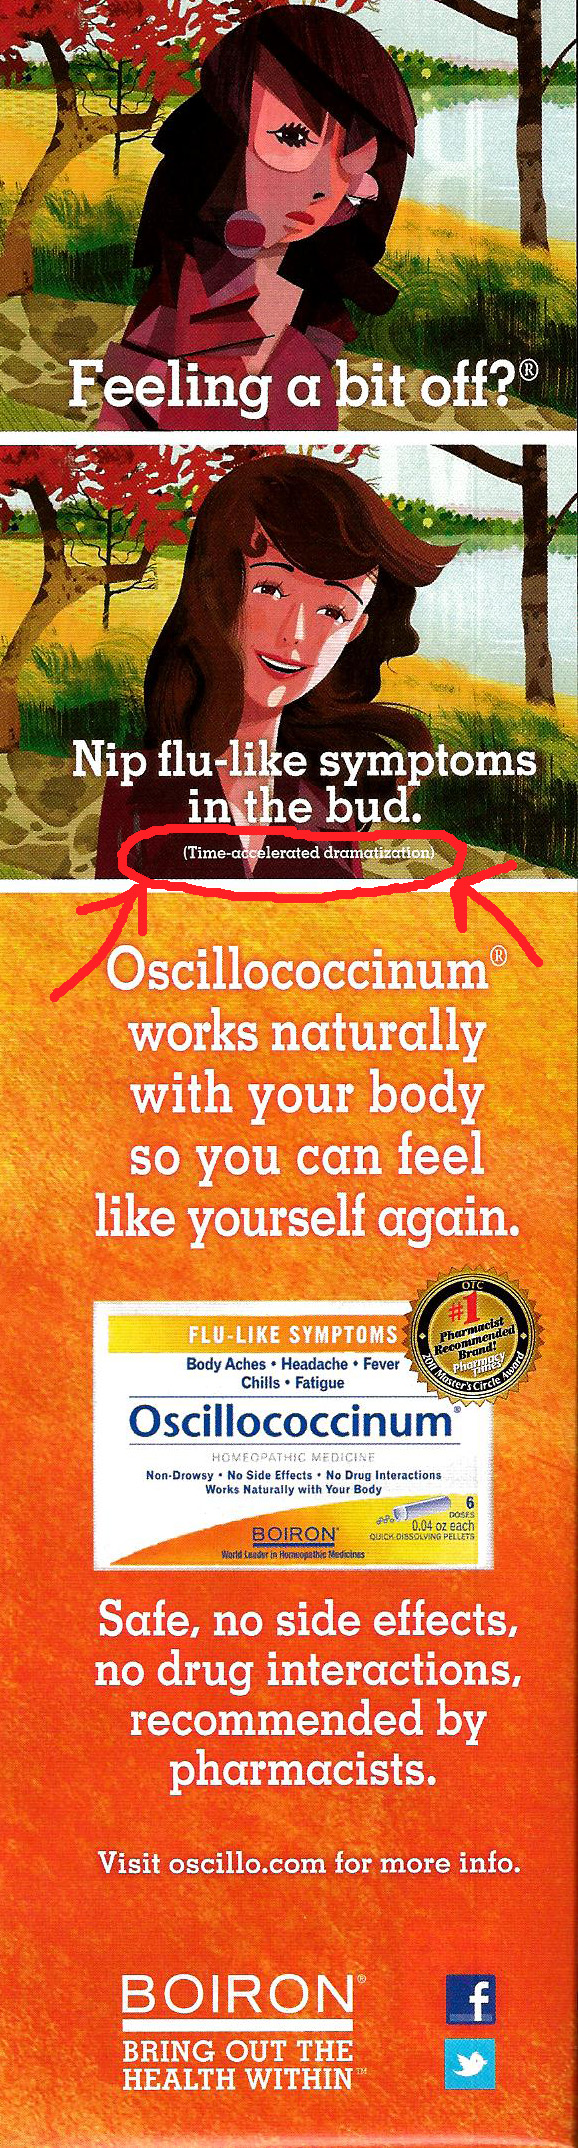 Oscillo Ad Channeling Picasso for Oscillo Flu Relief Fraud?